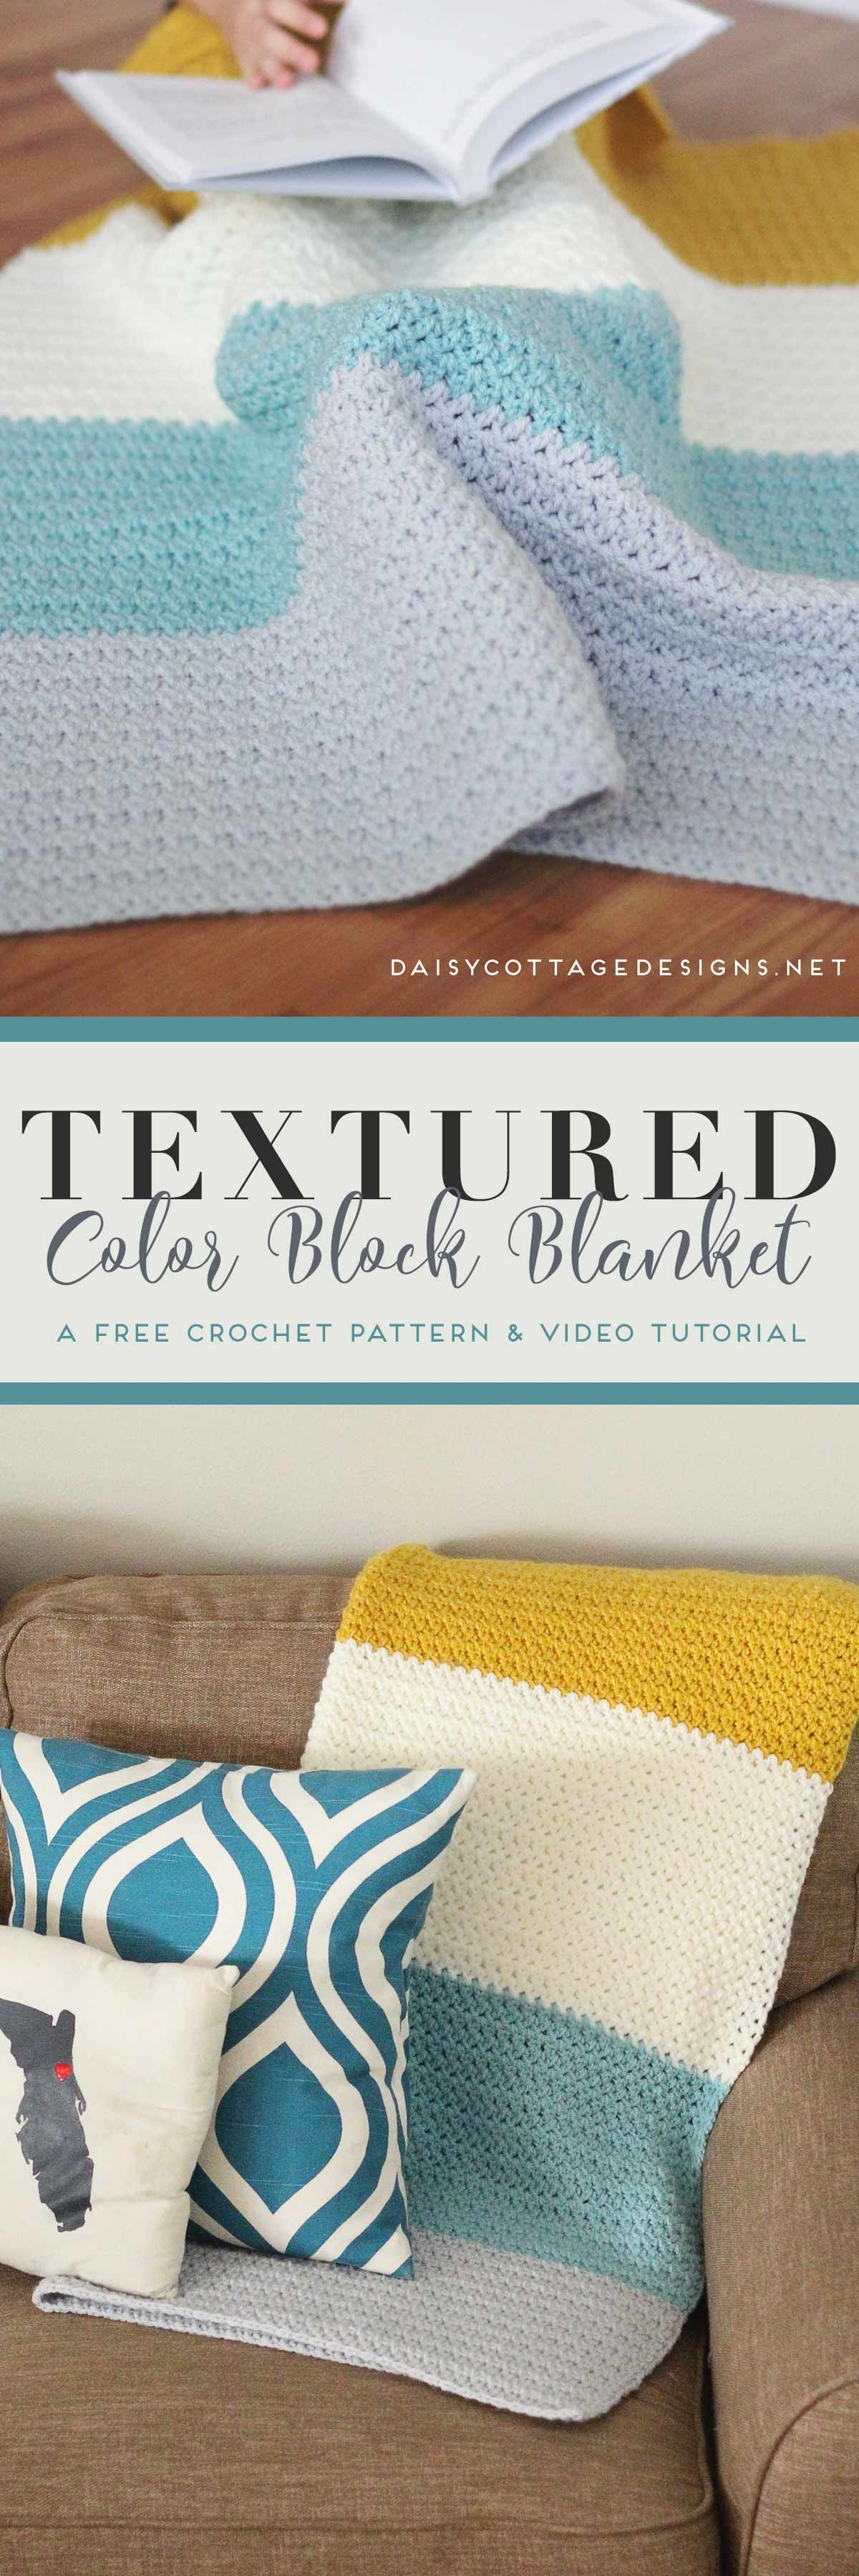 Color Block Blanket Crochet Pattern | Manta, Ganchillo y Colchas